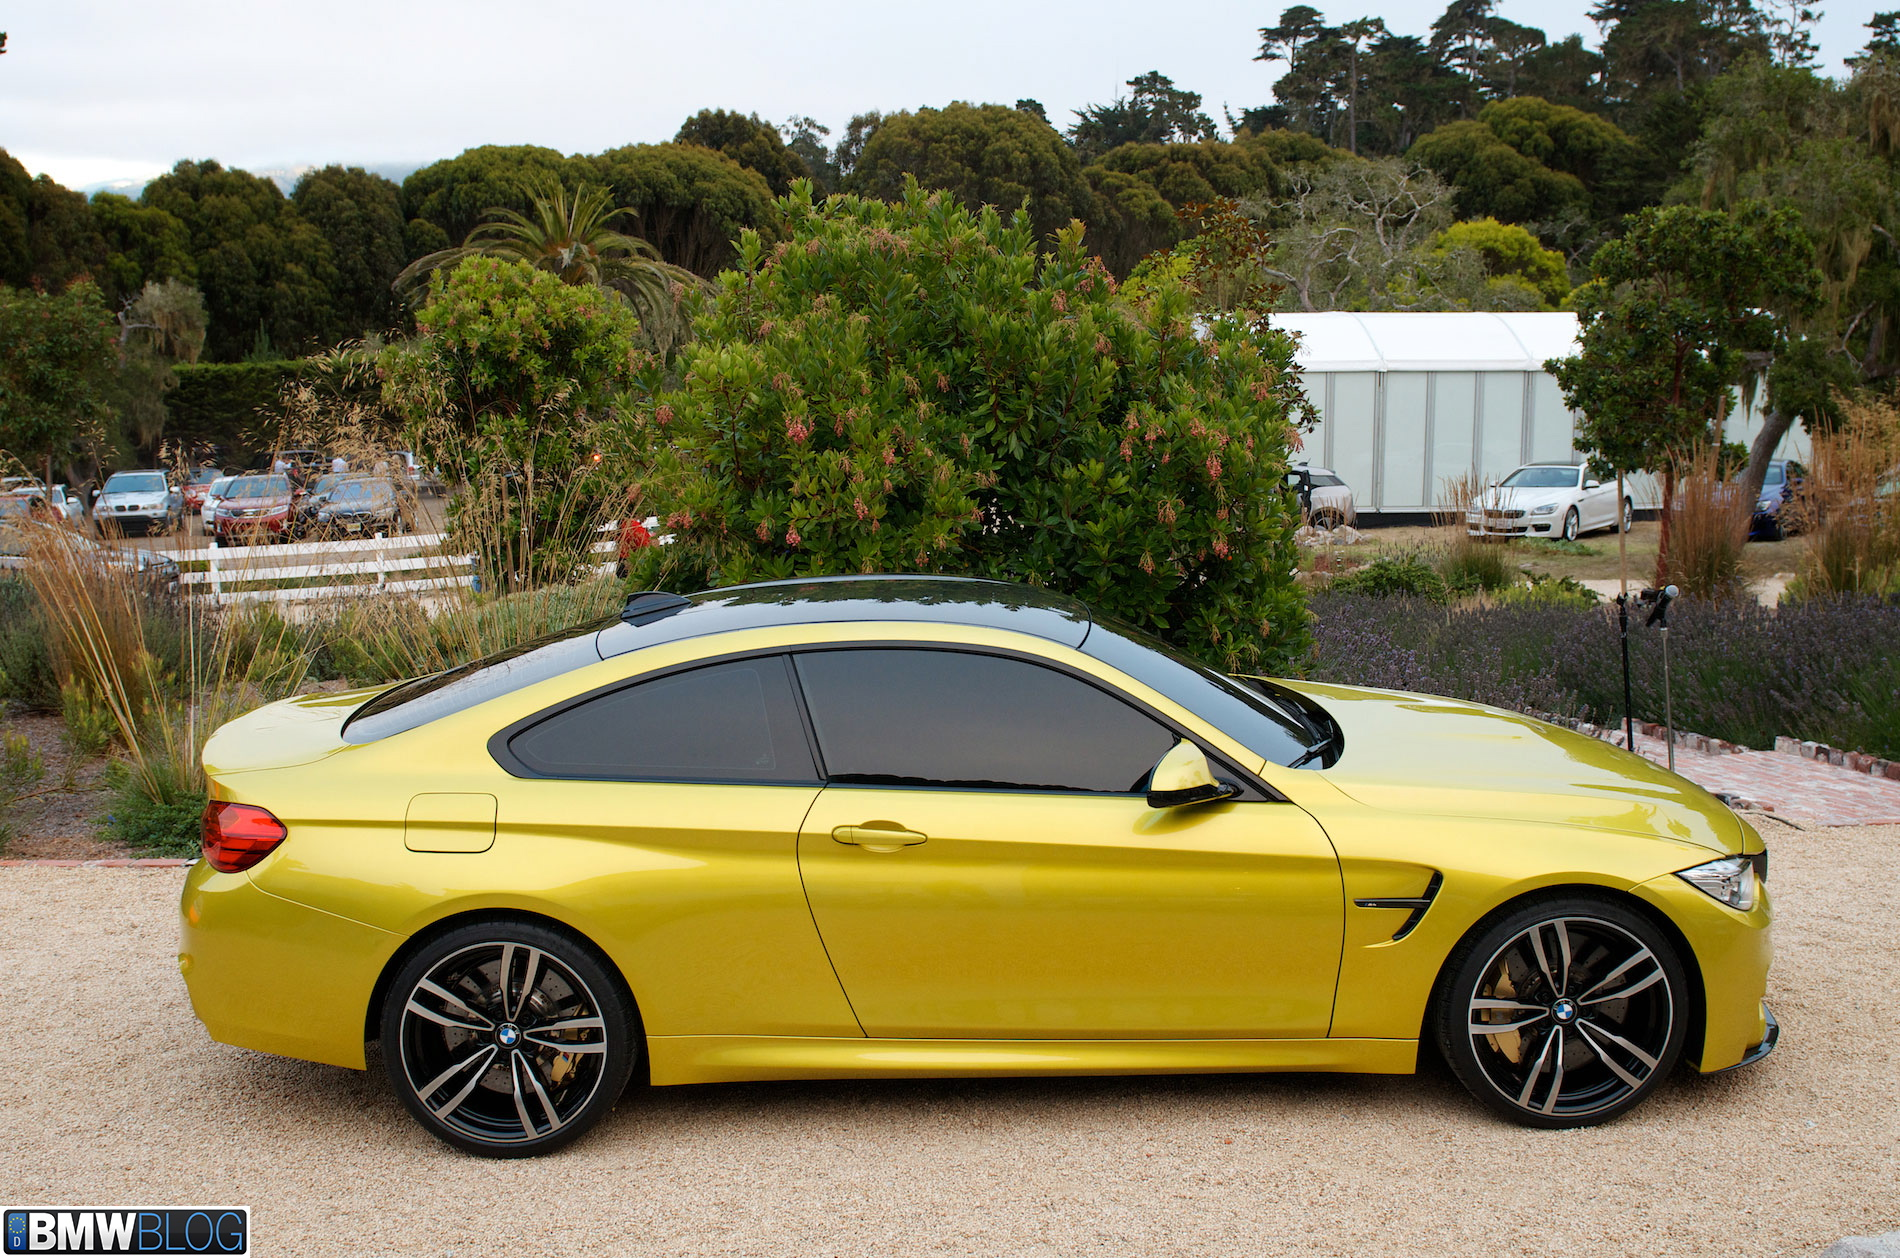 Real Life s BMW M4 Coupe at Pebble Beach